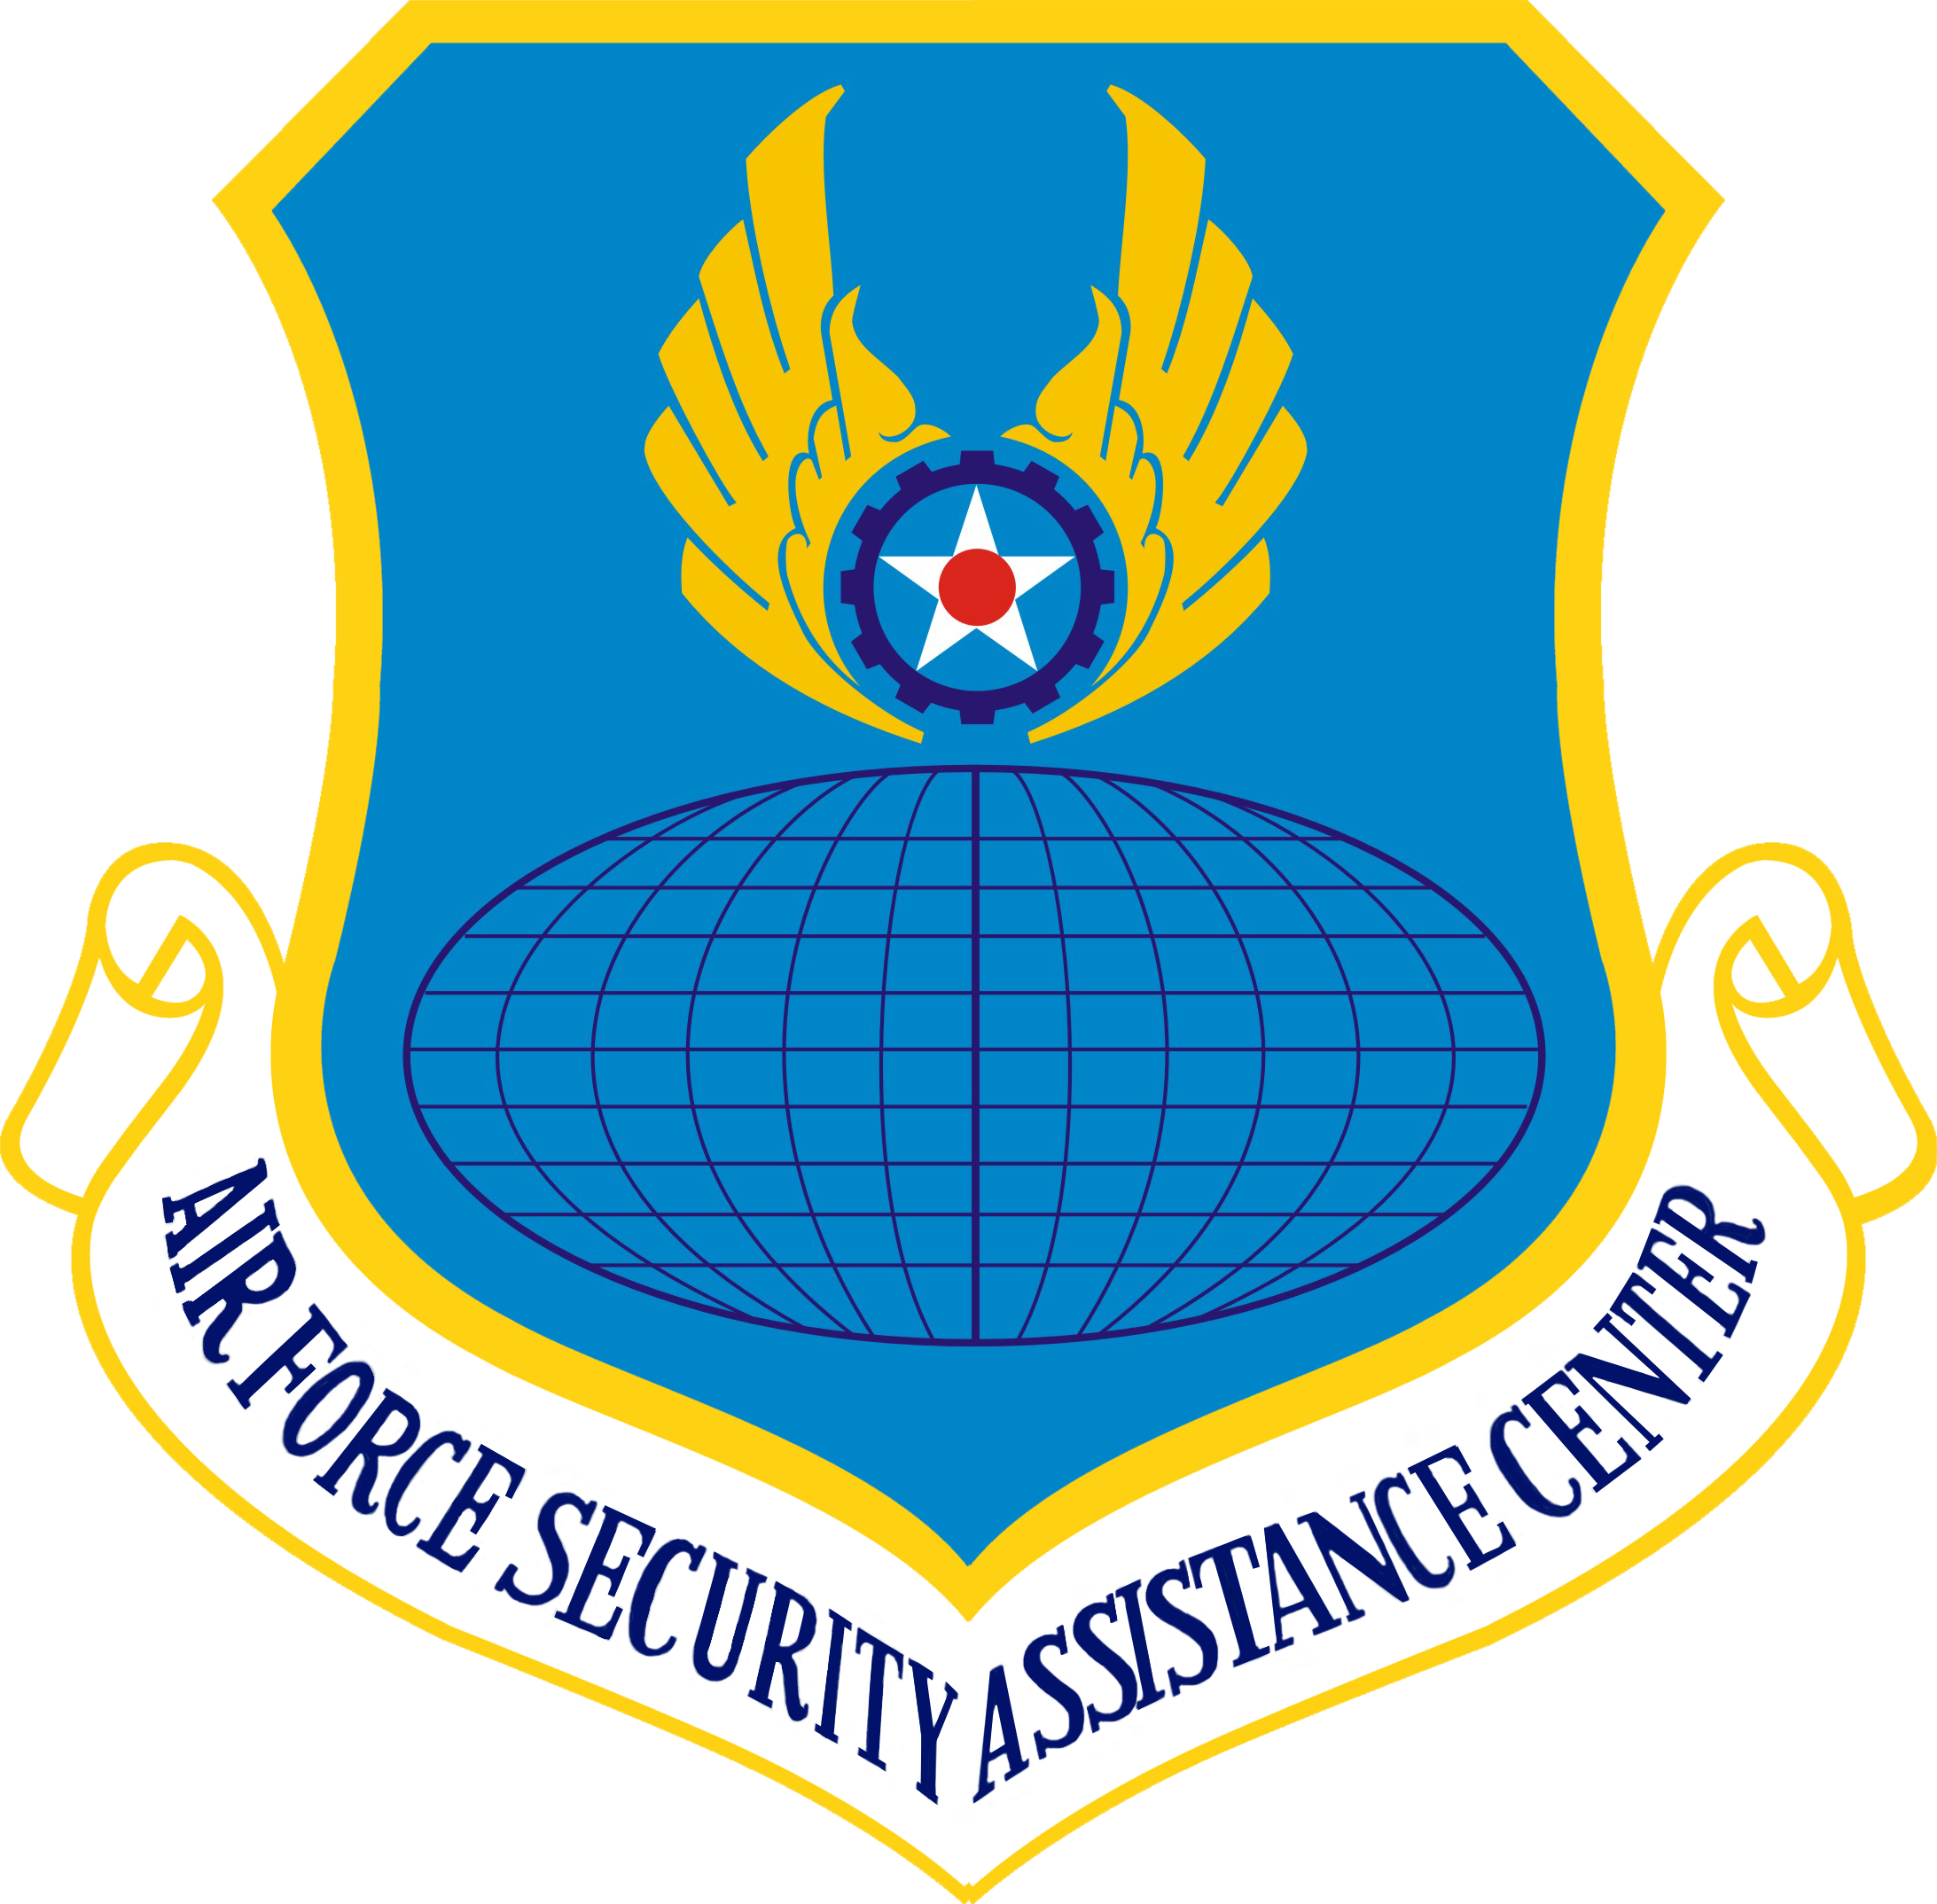 https://upload.wikimedia.org/wikipedia/commons/d/d4/USAF_-_Security_Assistance_Center.png